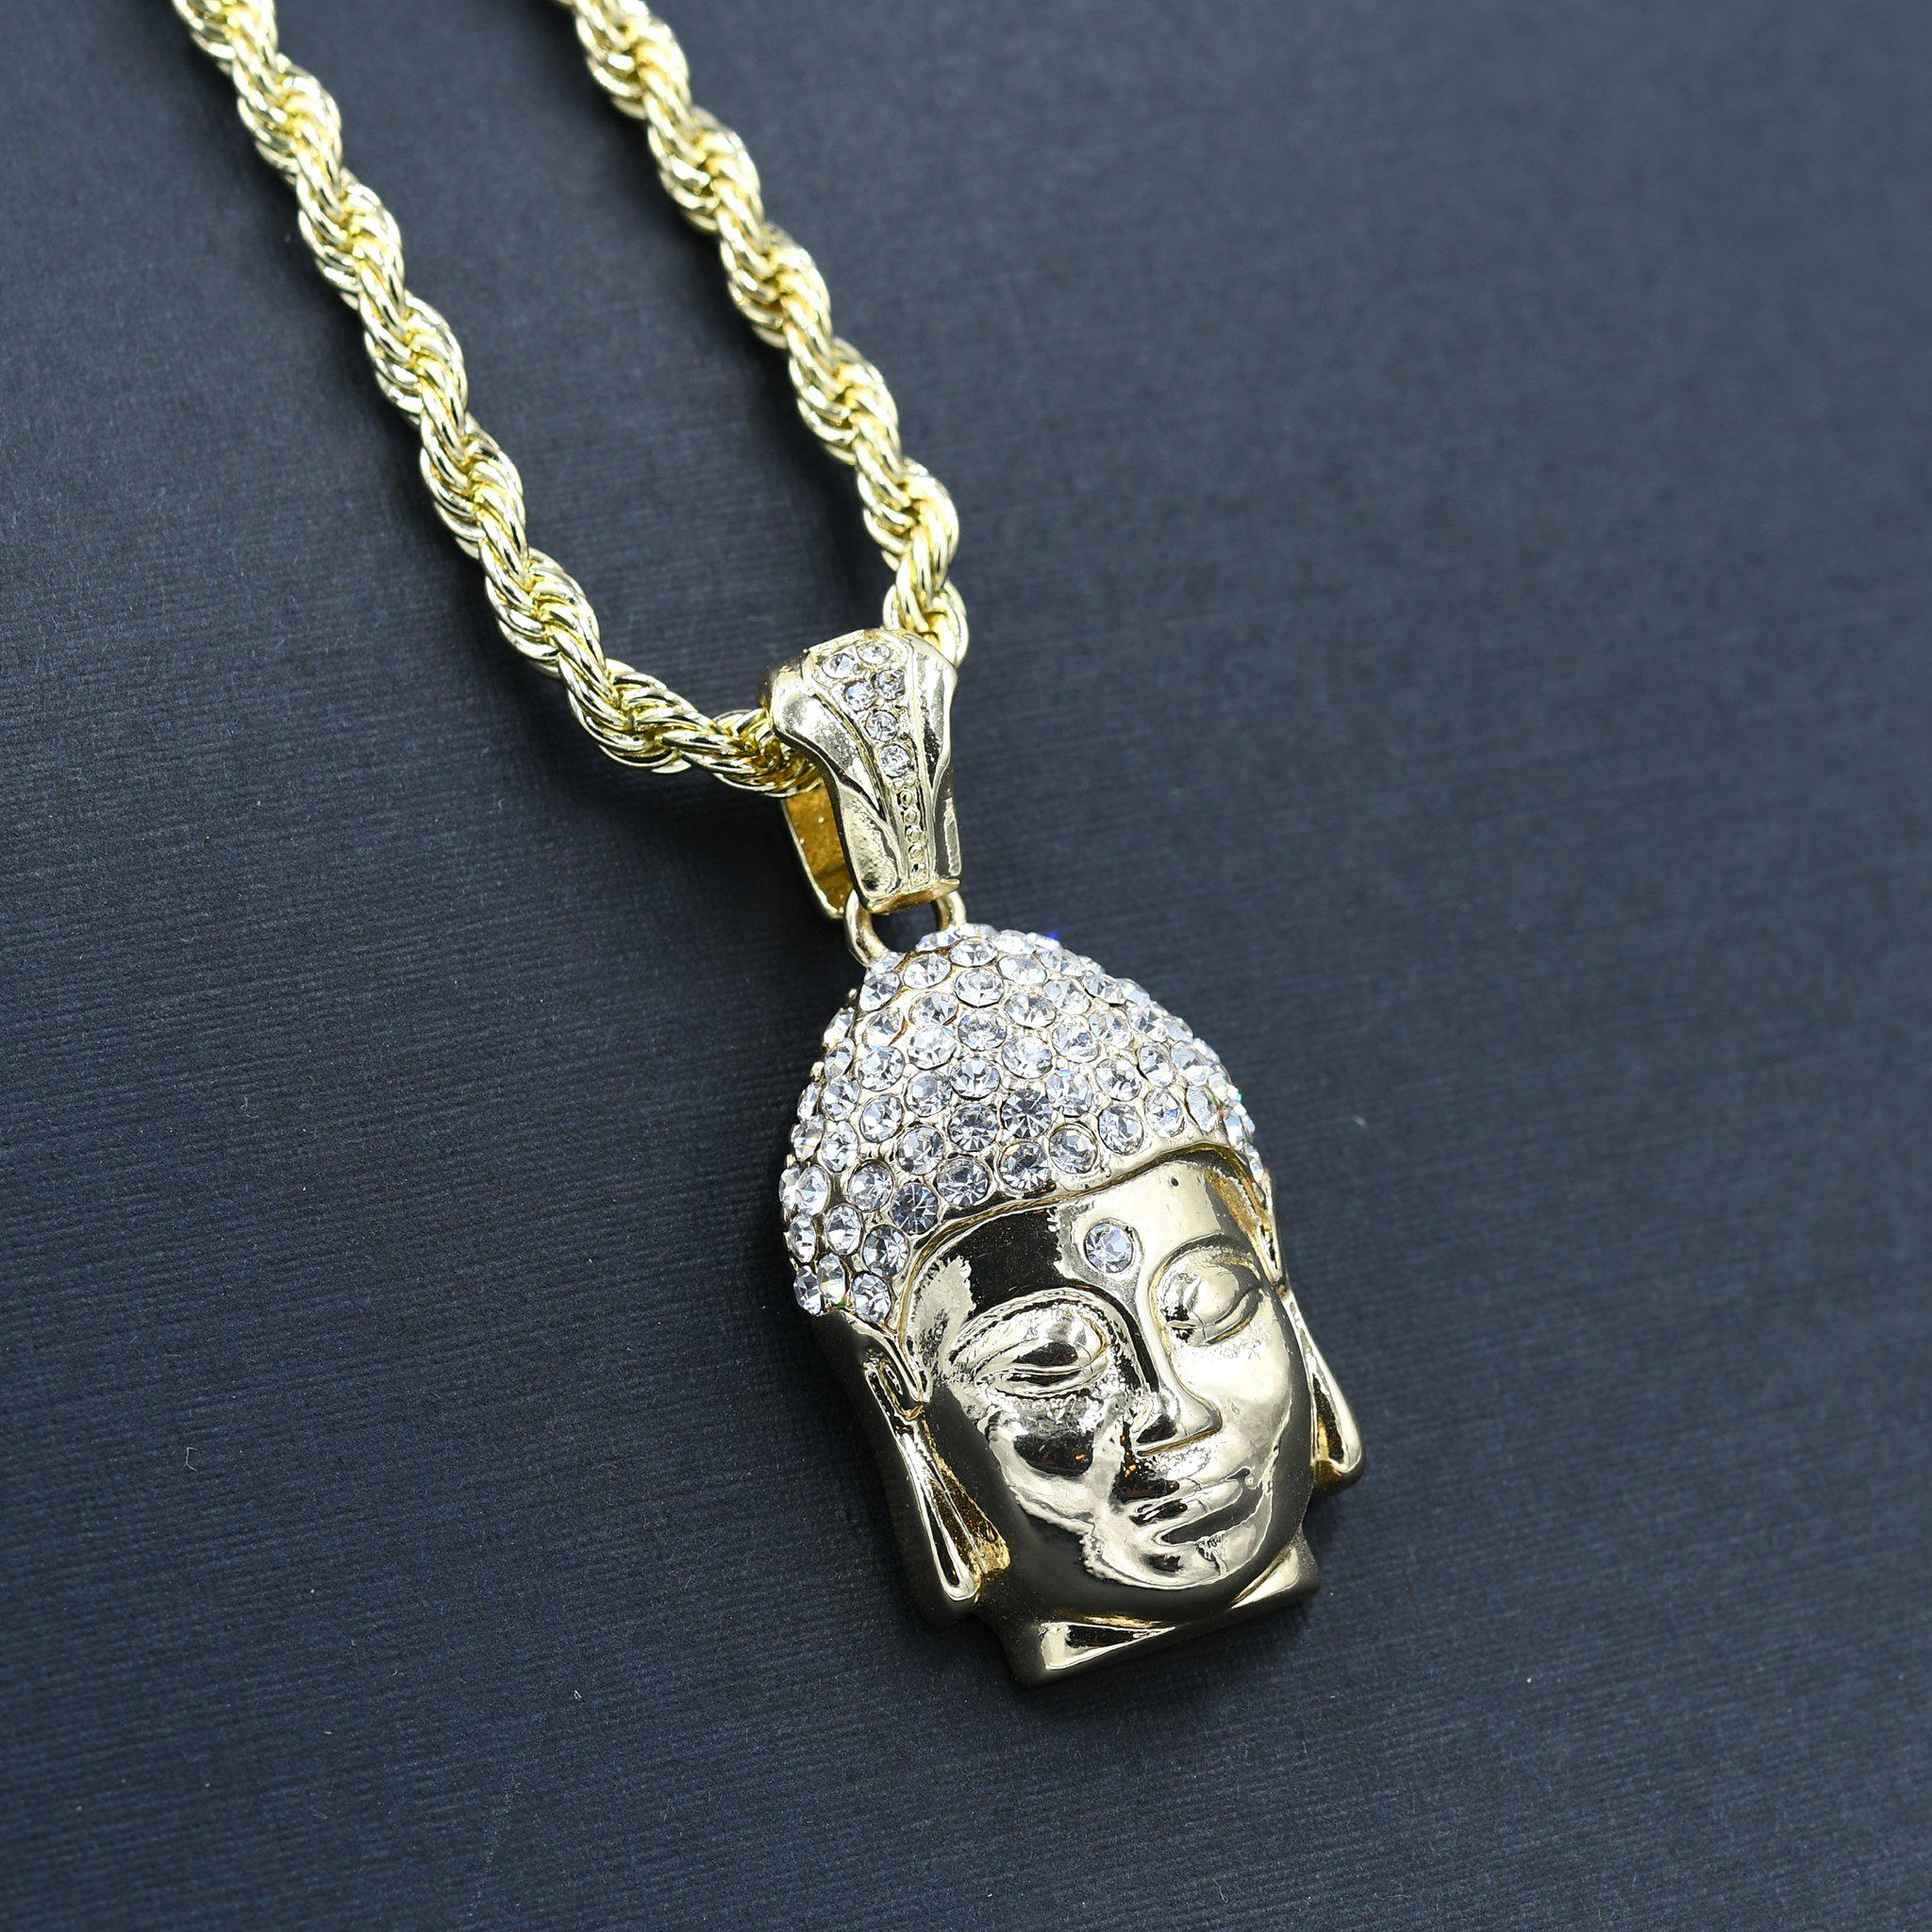 Ship Chain and Charm-Men Necklace-Gold as Ice